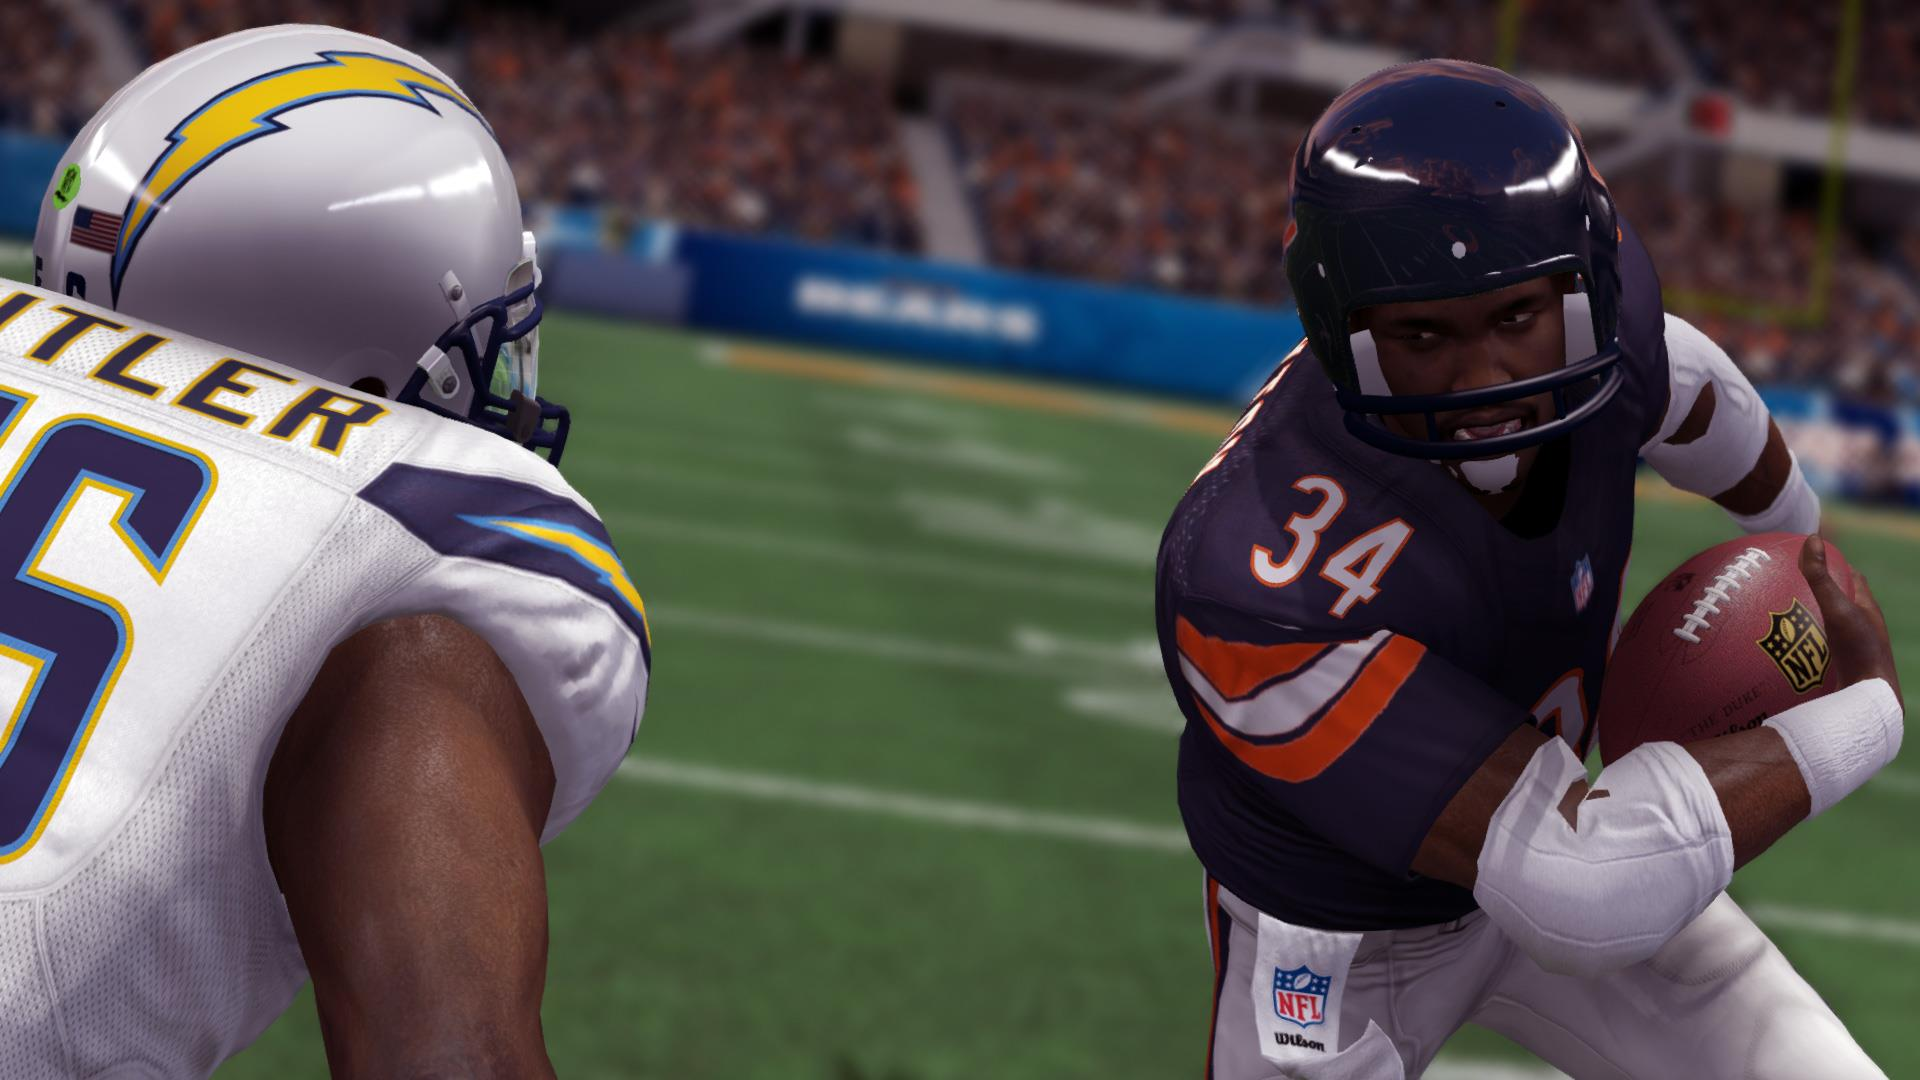 Walter Payton Legacy Award in Madden NFL 25